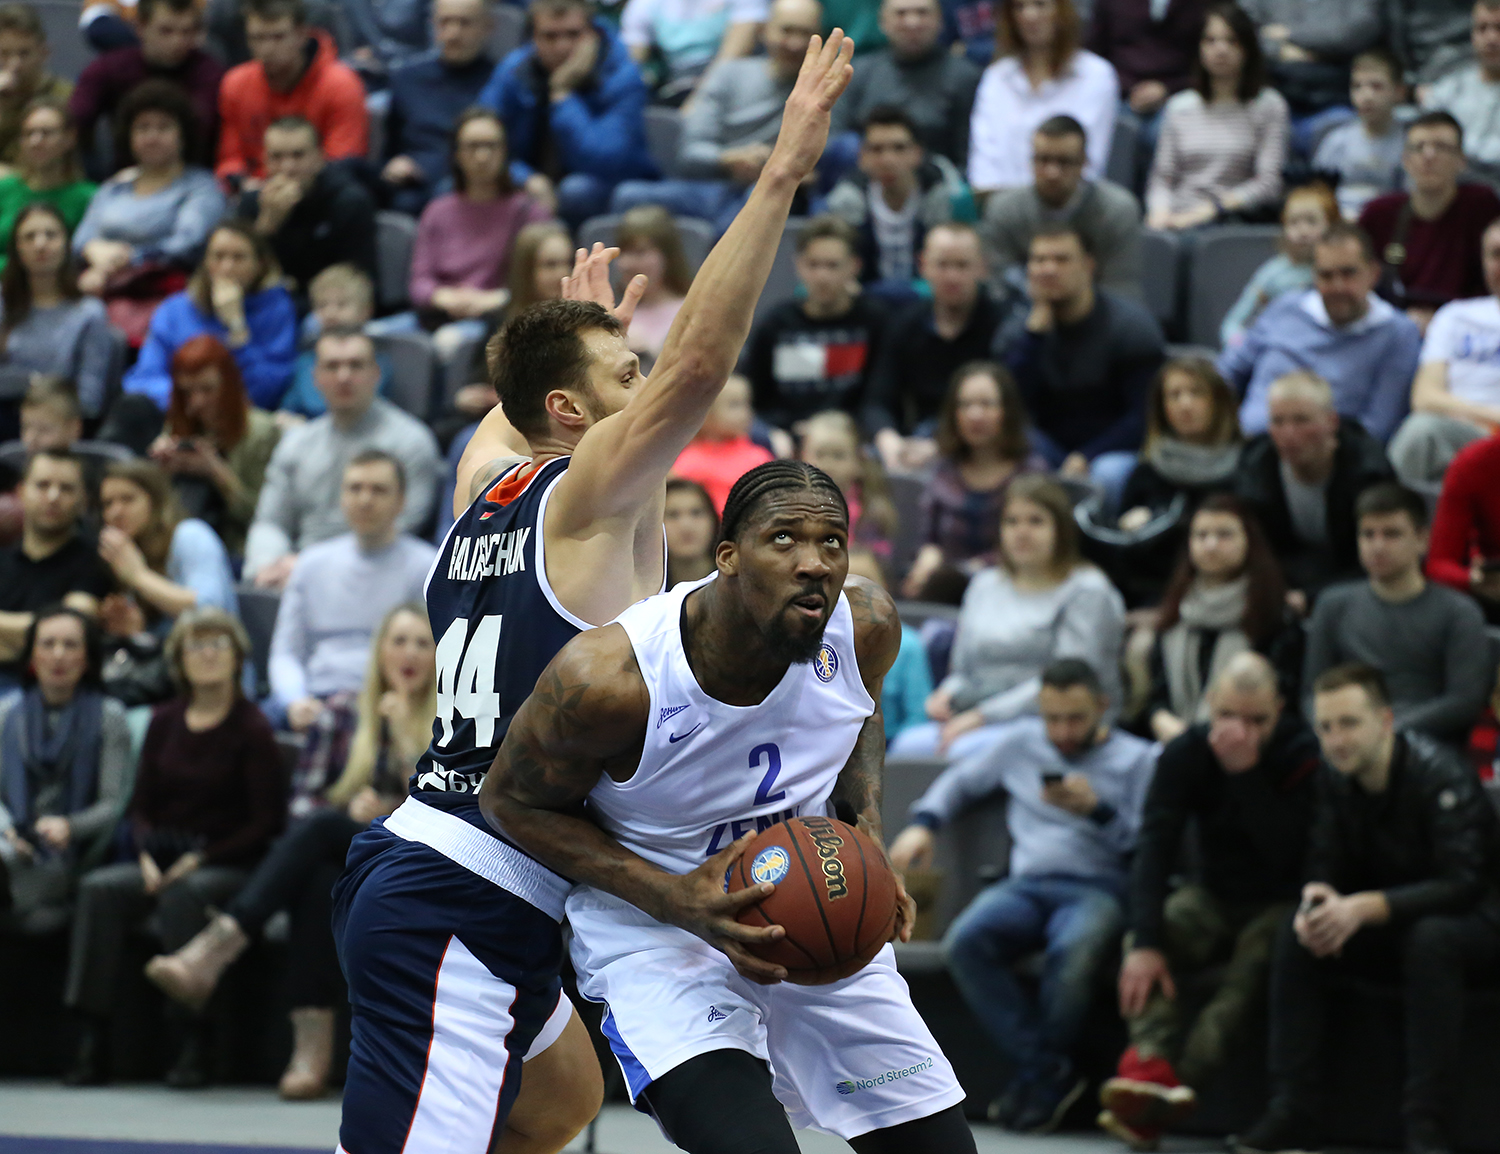 Zenit Cruises To 5th-Straight Win In Belarus